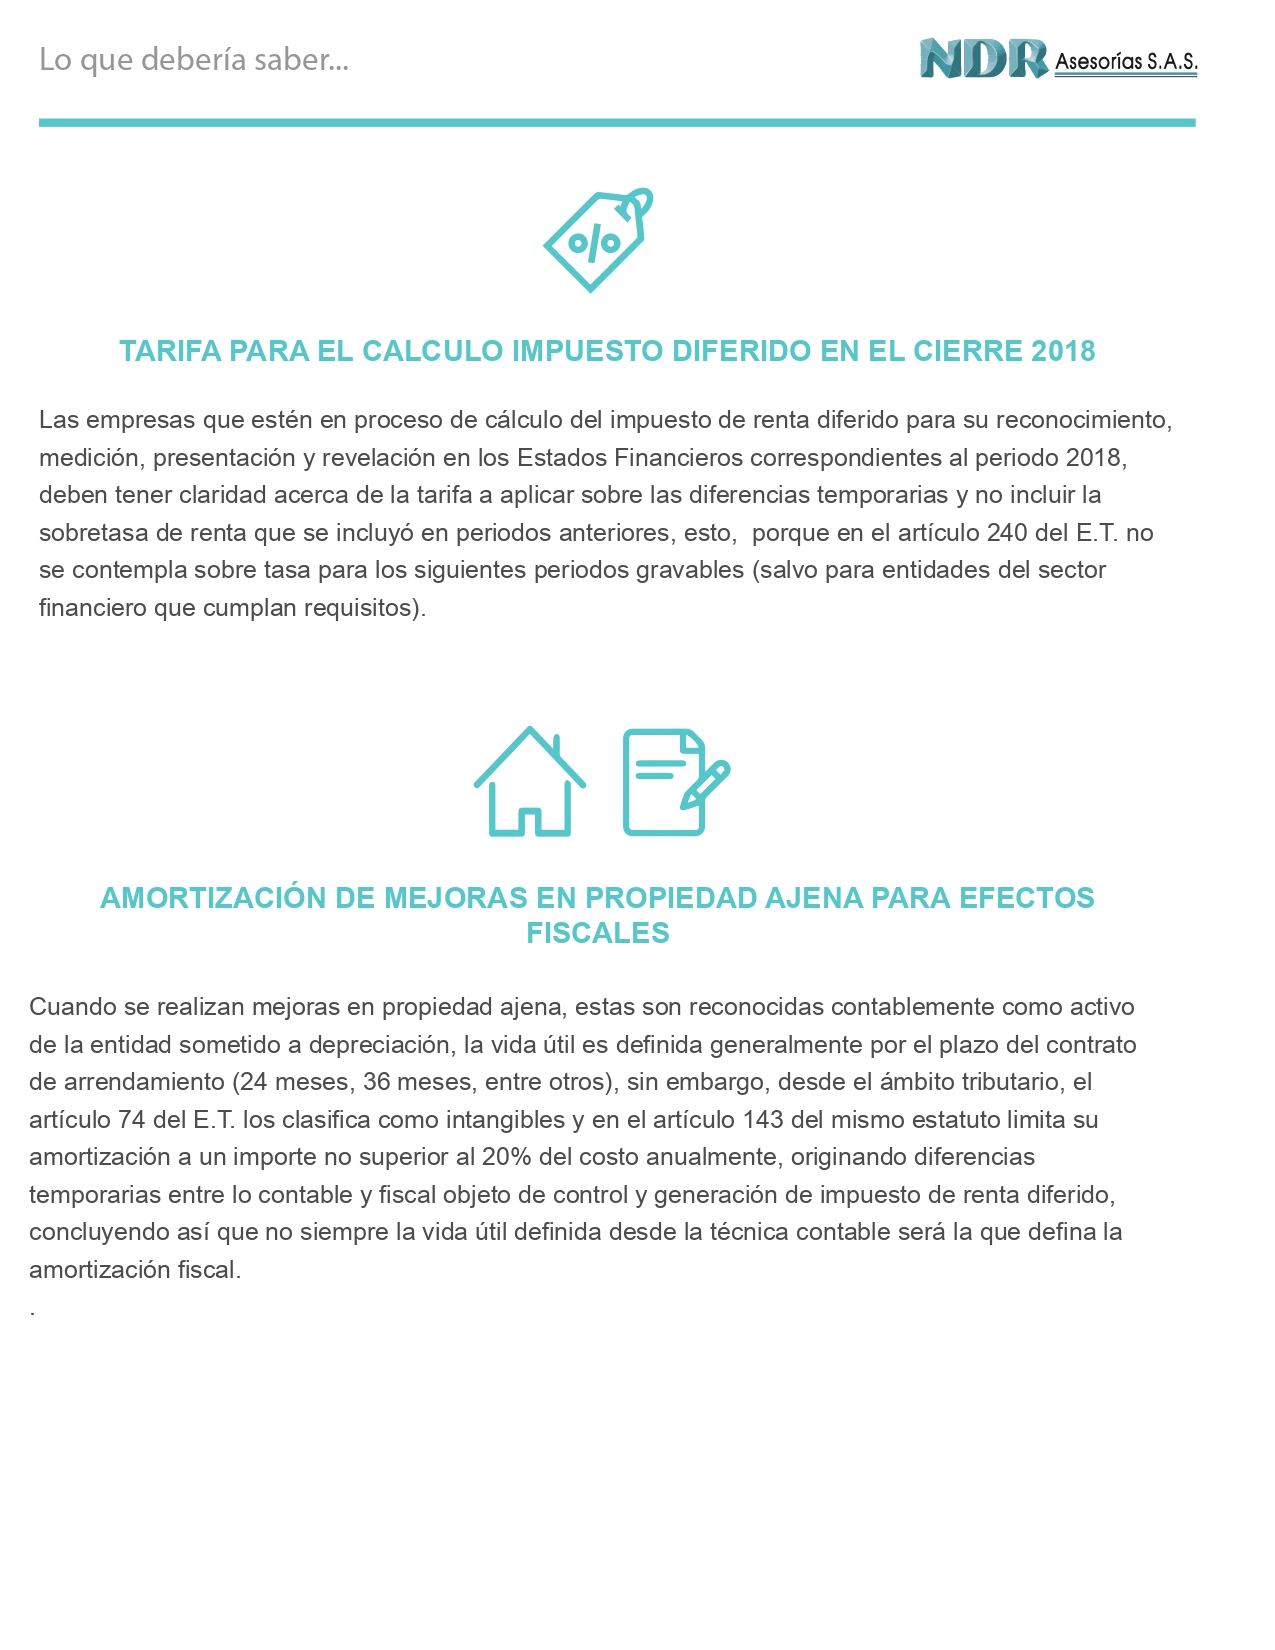 BOLETÍN SECTOR LEGAL_pages-to-jpg-0002